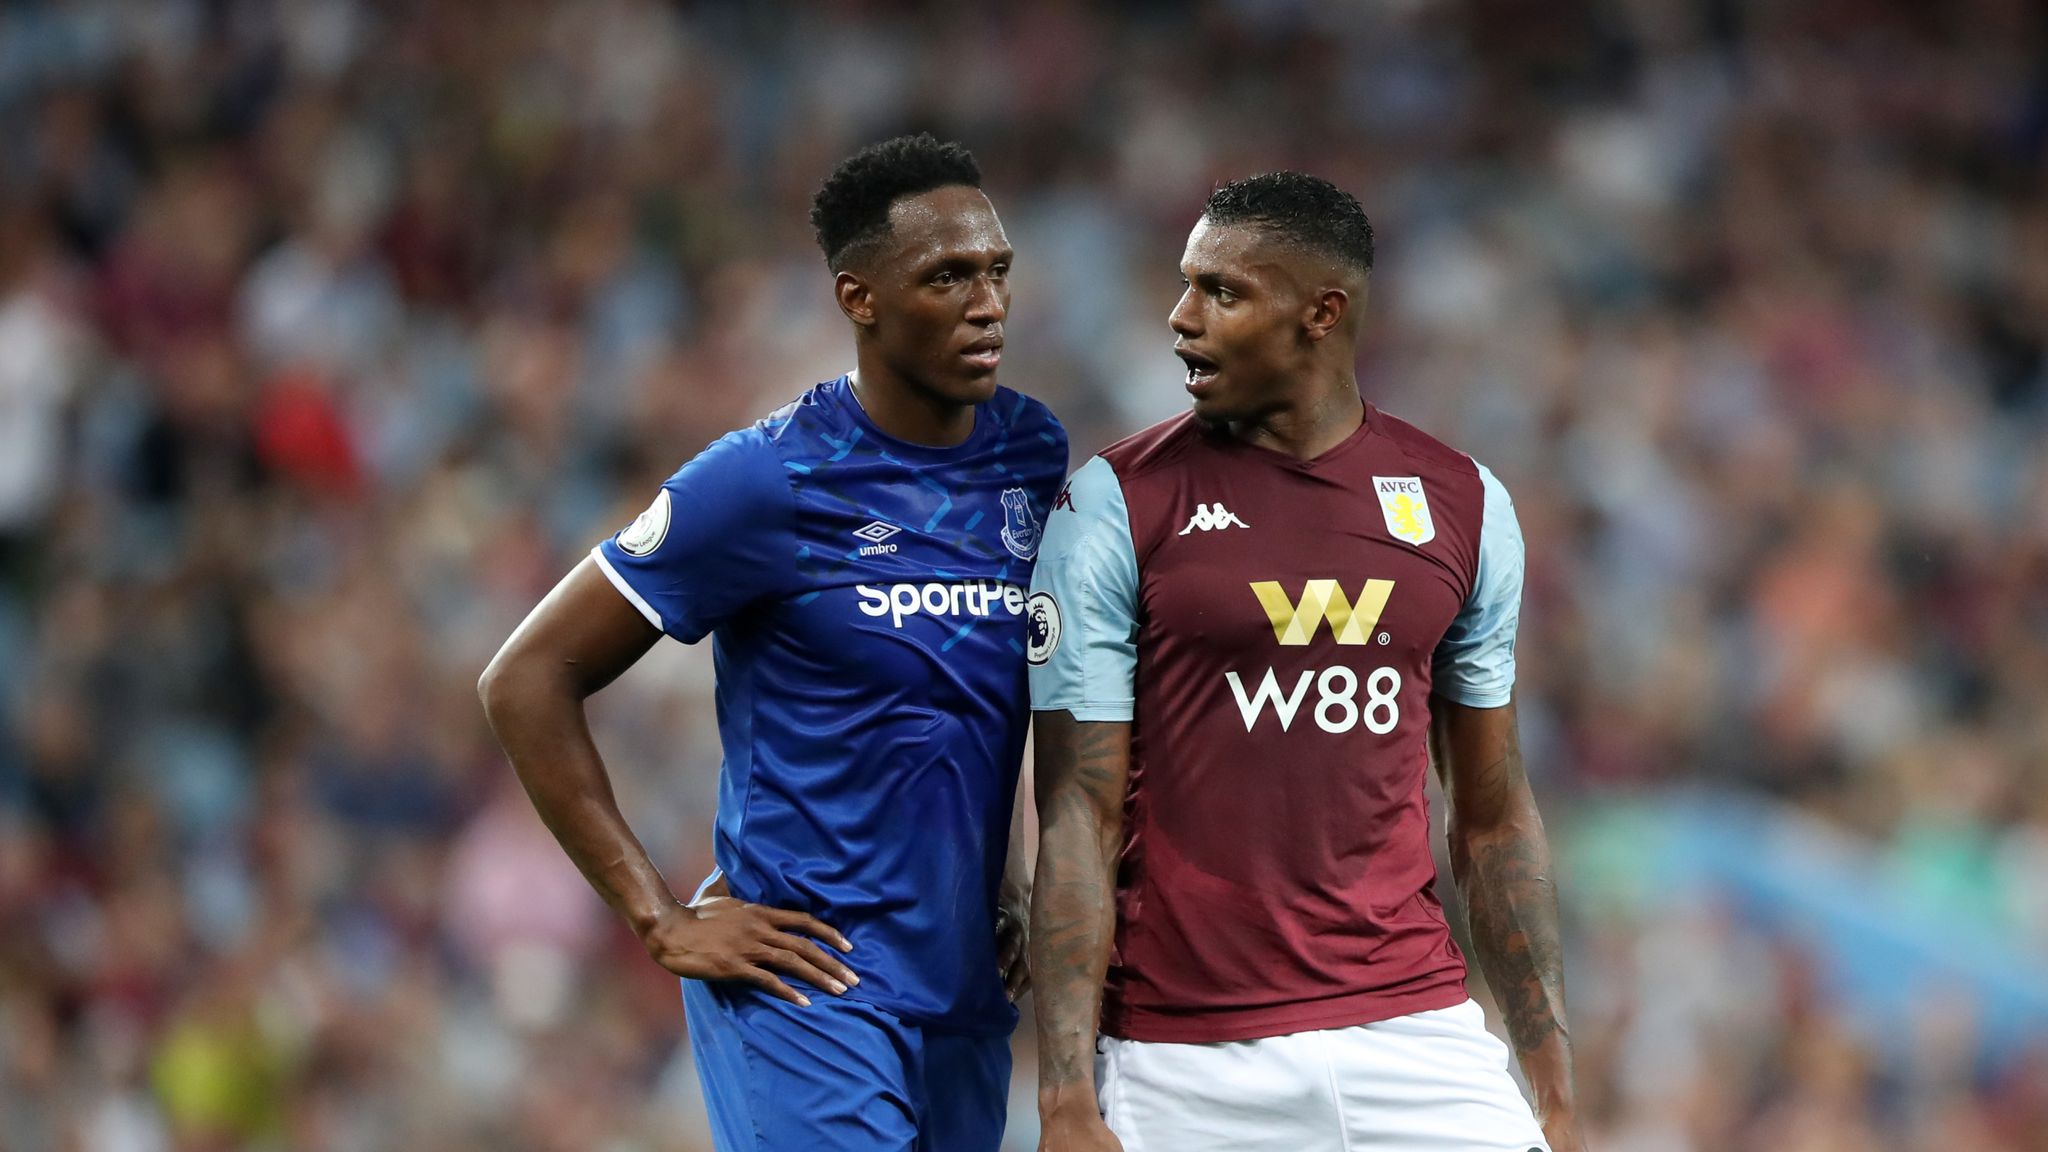 Aston Villa's Wesley: How being a dad at 14 motivated me